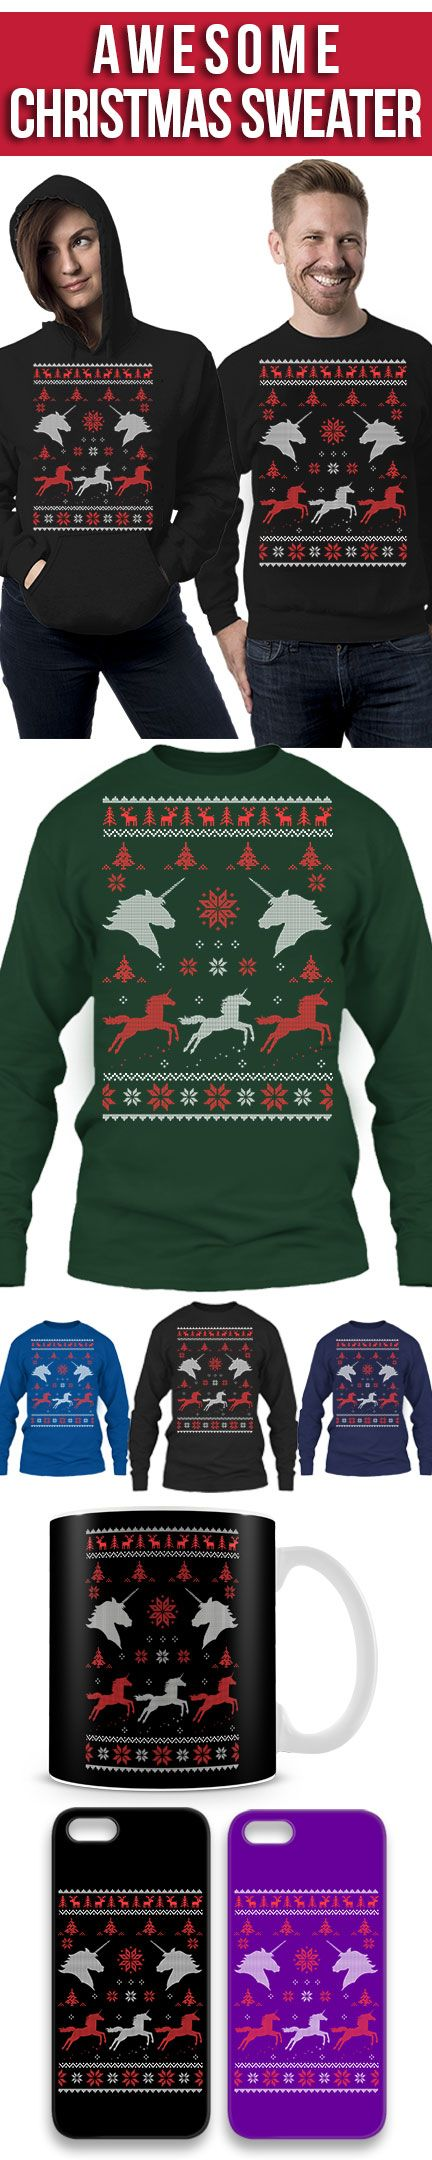 Unicorn Ugly Christmas Sweater! Click The Image To Buy It Now or Tag Someone You Want To Buy This For. #unicron